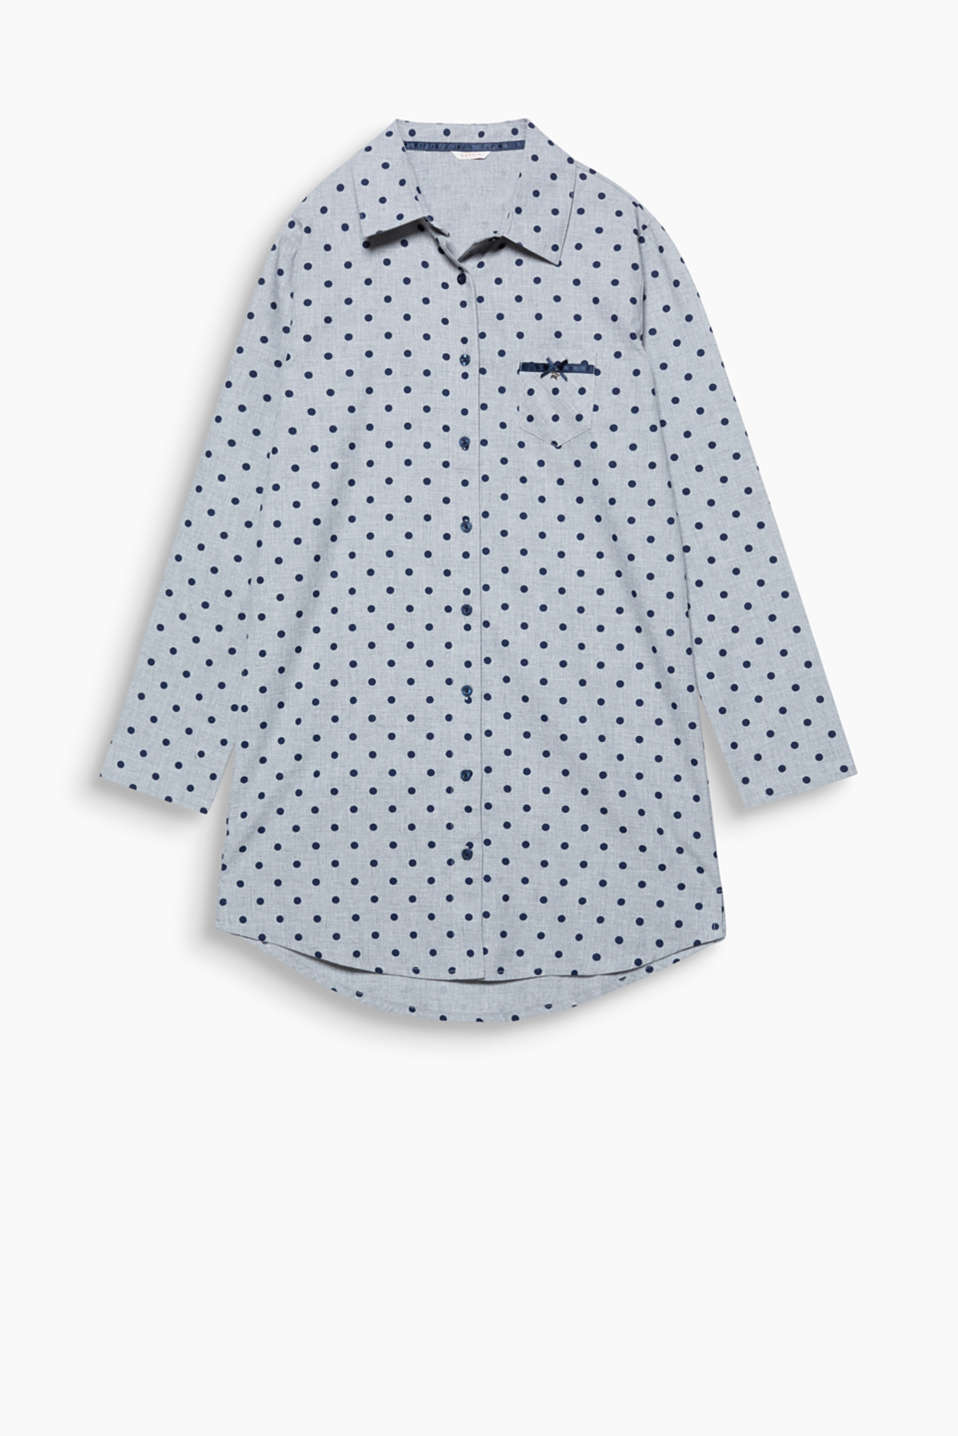 Retro polka dots are equally beguiling by night: nightshirt with a breast pocket and satin detailing